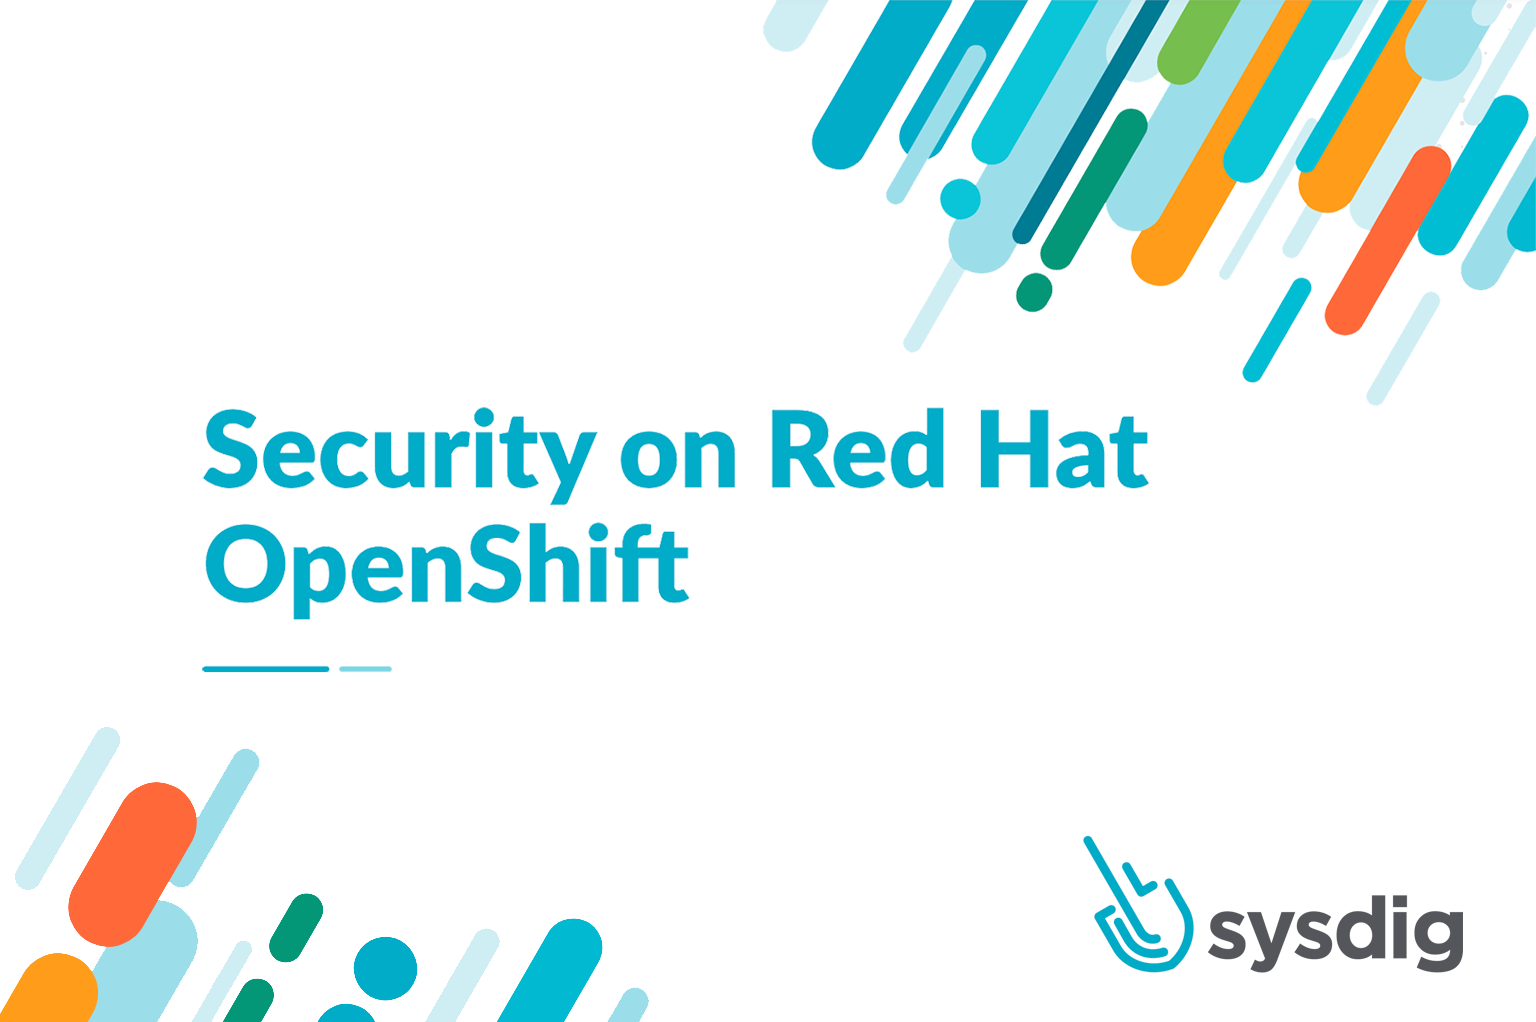 Securing Cloud Applications on Red Hat OpenShift